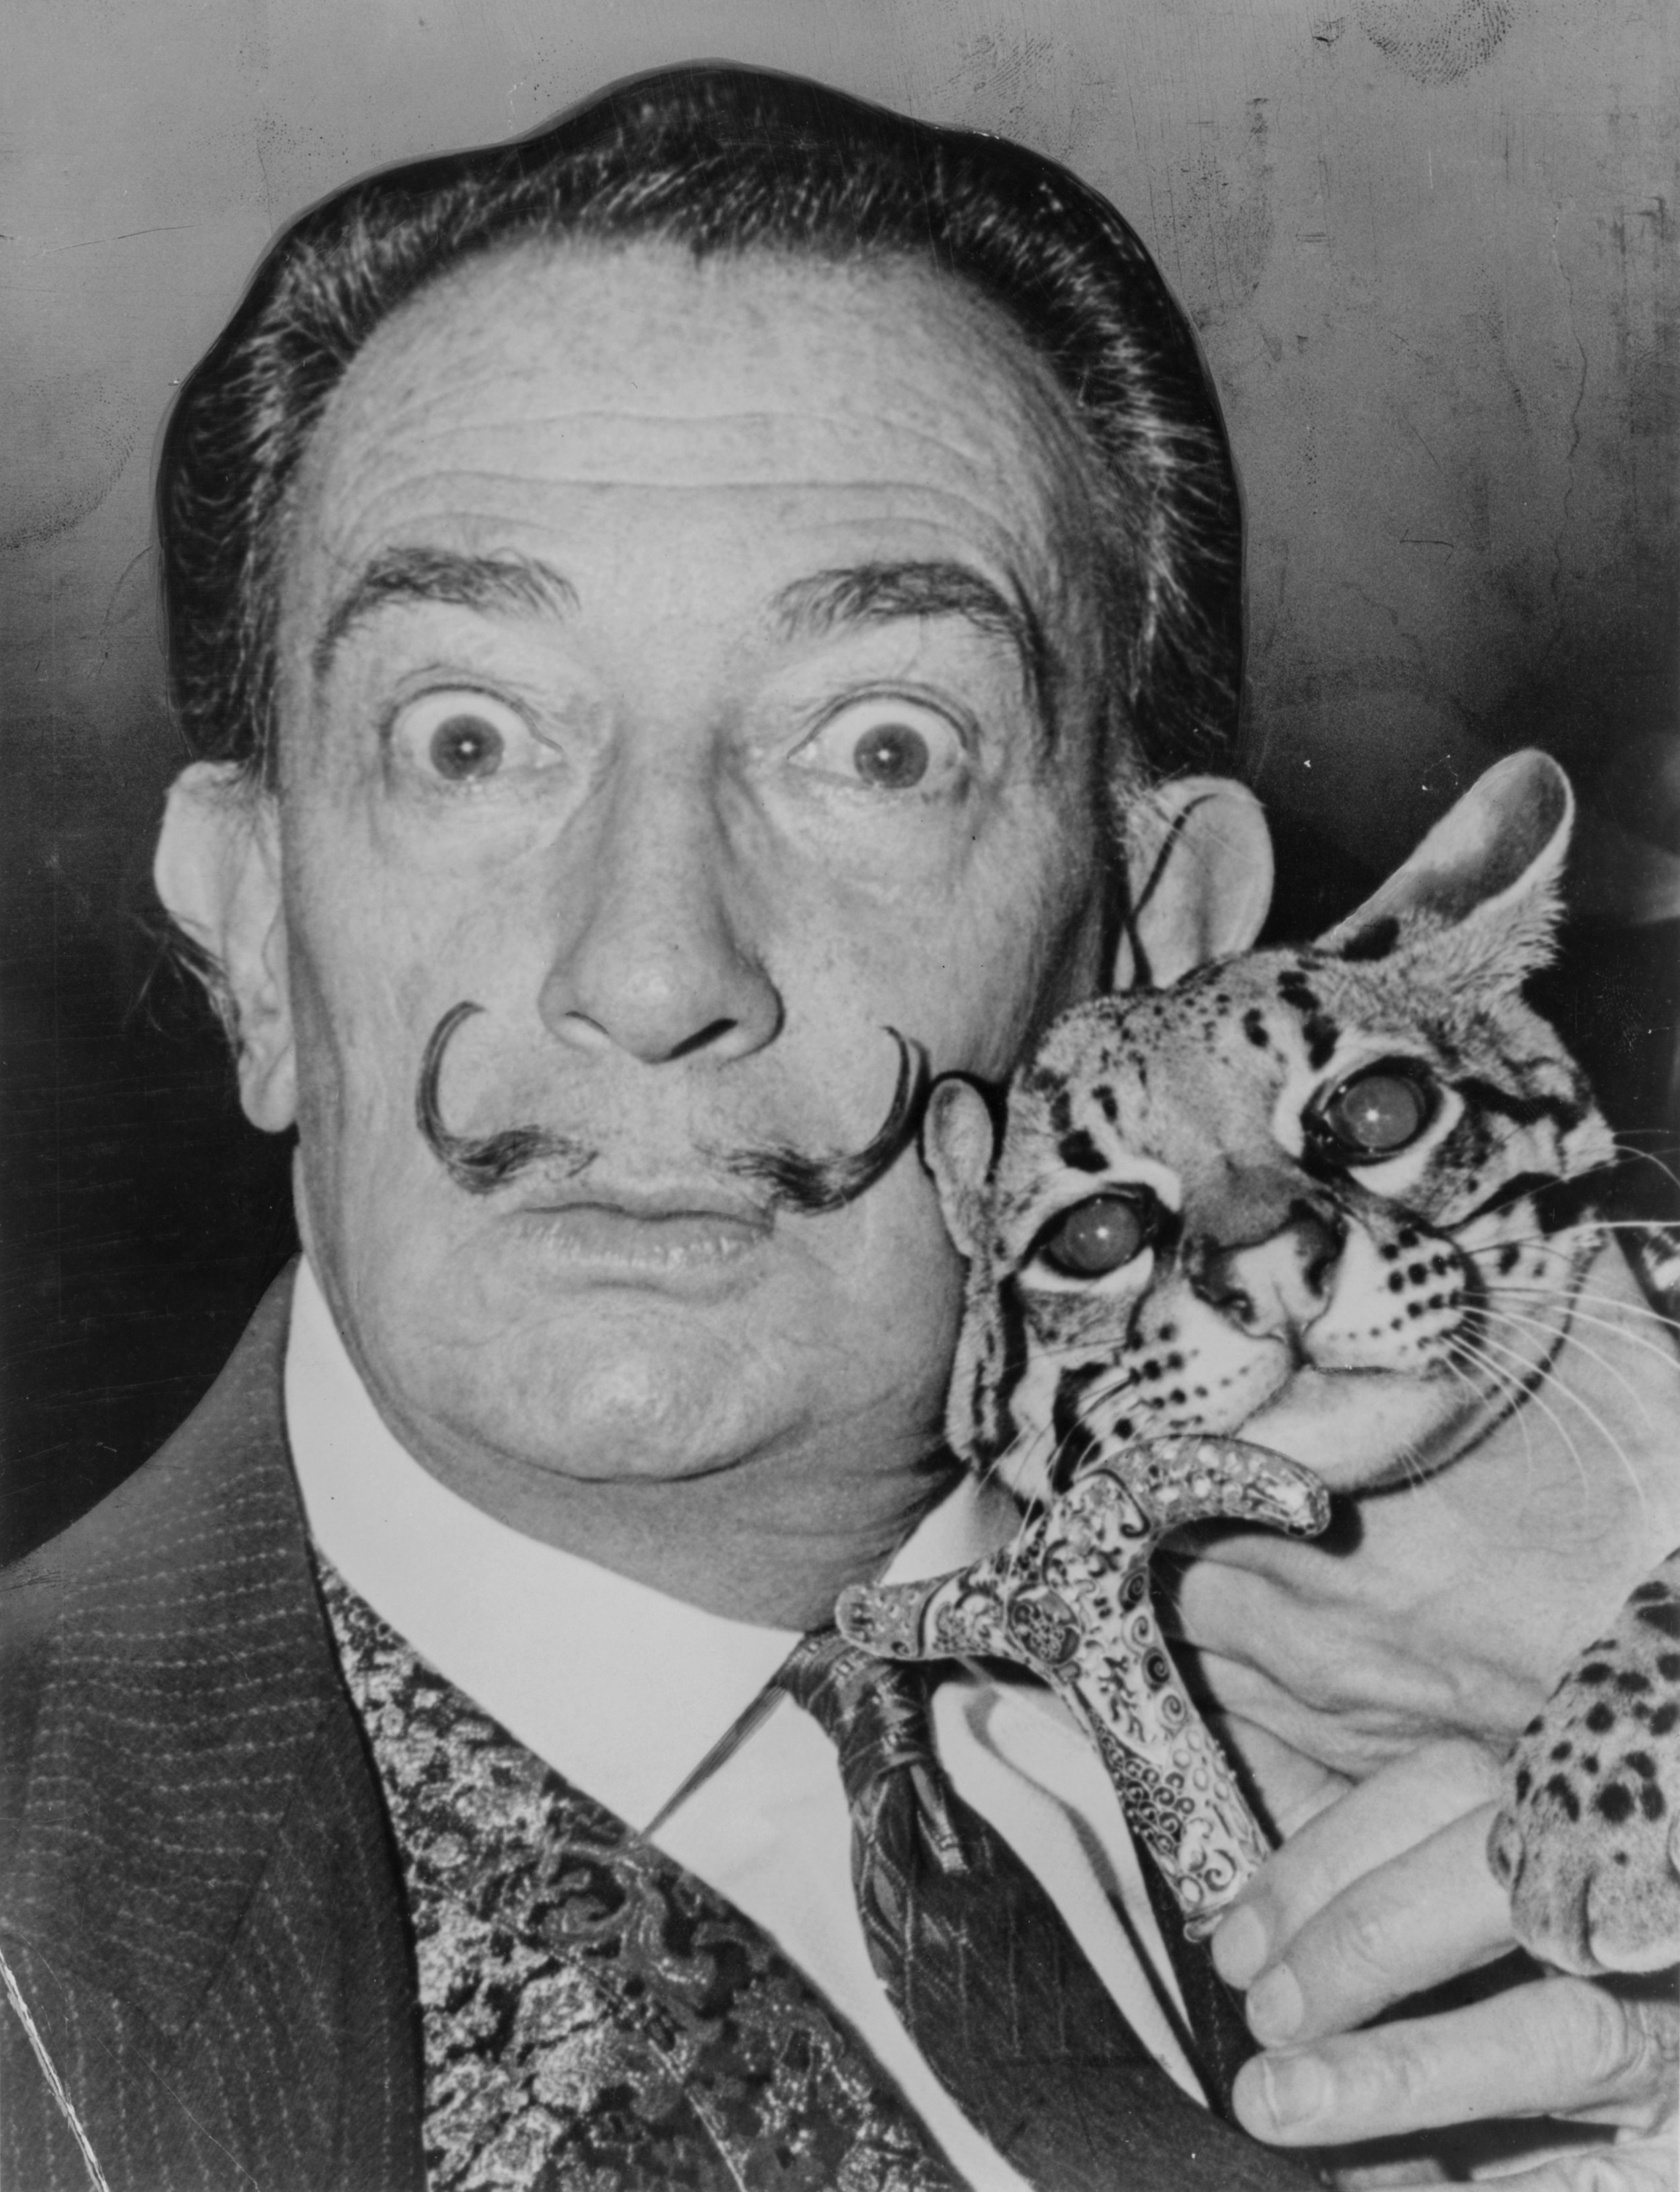 Salvador Dali, an artist, the model for my enthusiastic eye-ball look, and a holder of ocelots. (Photo by Roger Higgins, World Telegram staff photographer. No known copyright restrictions)